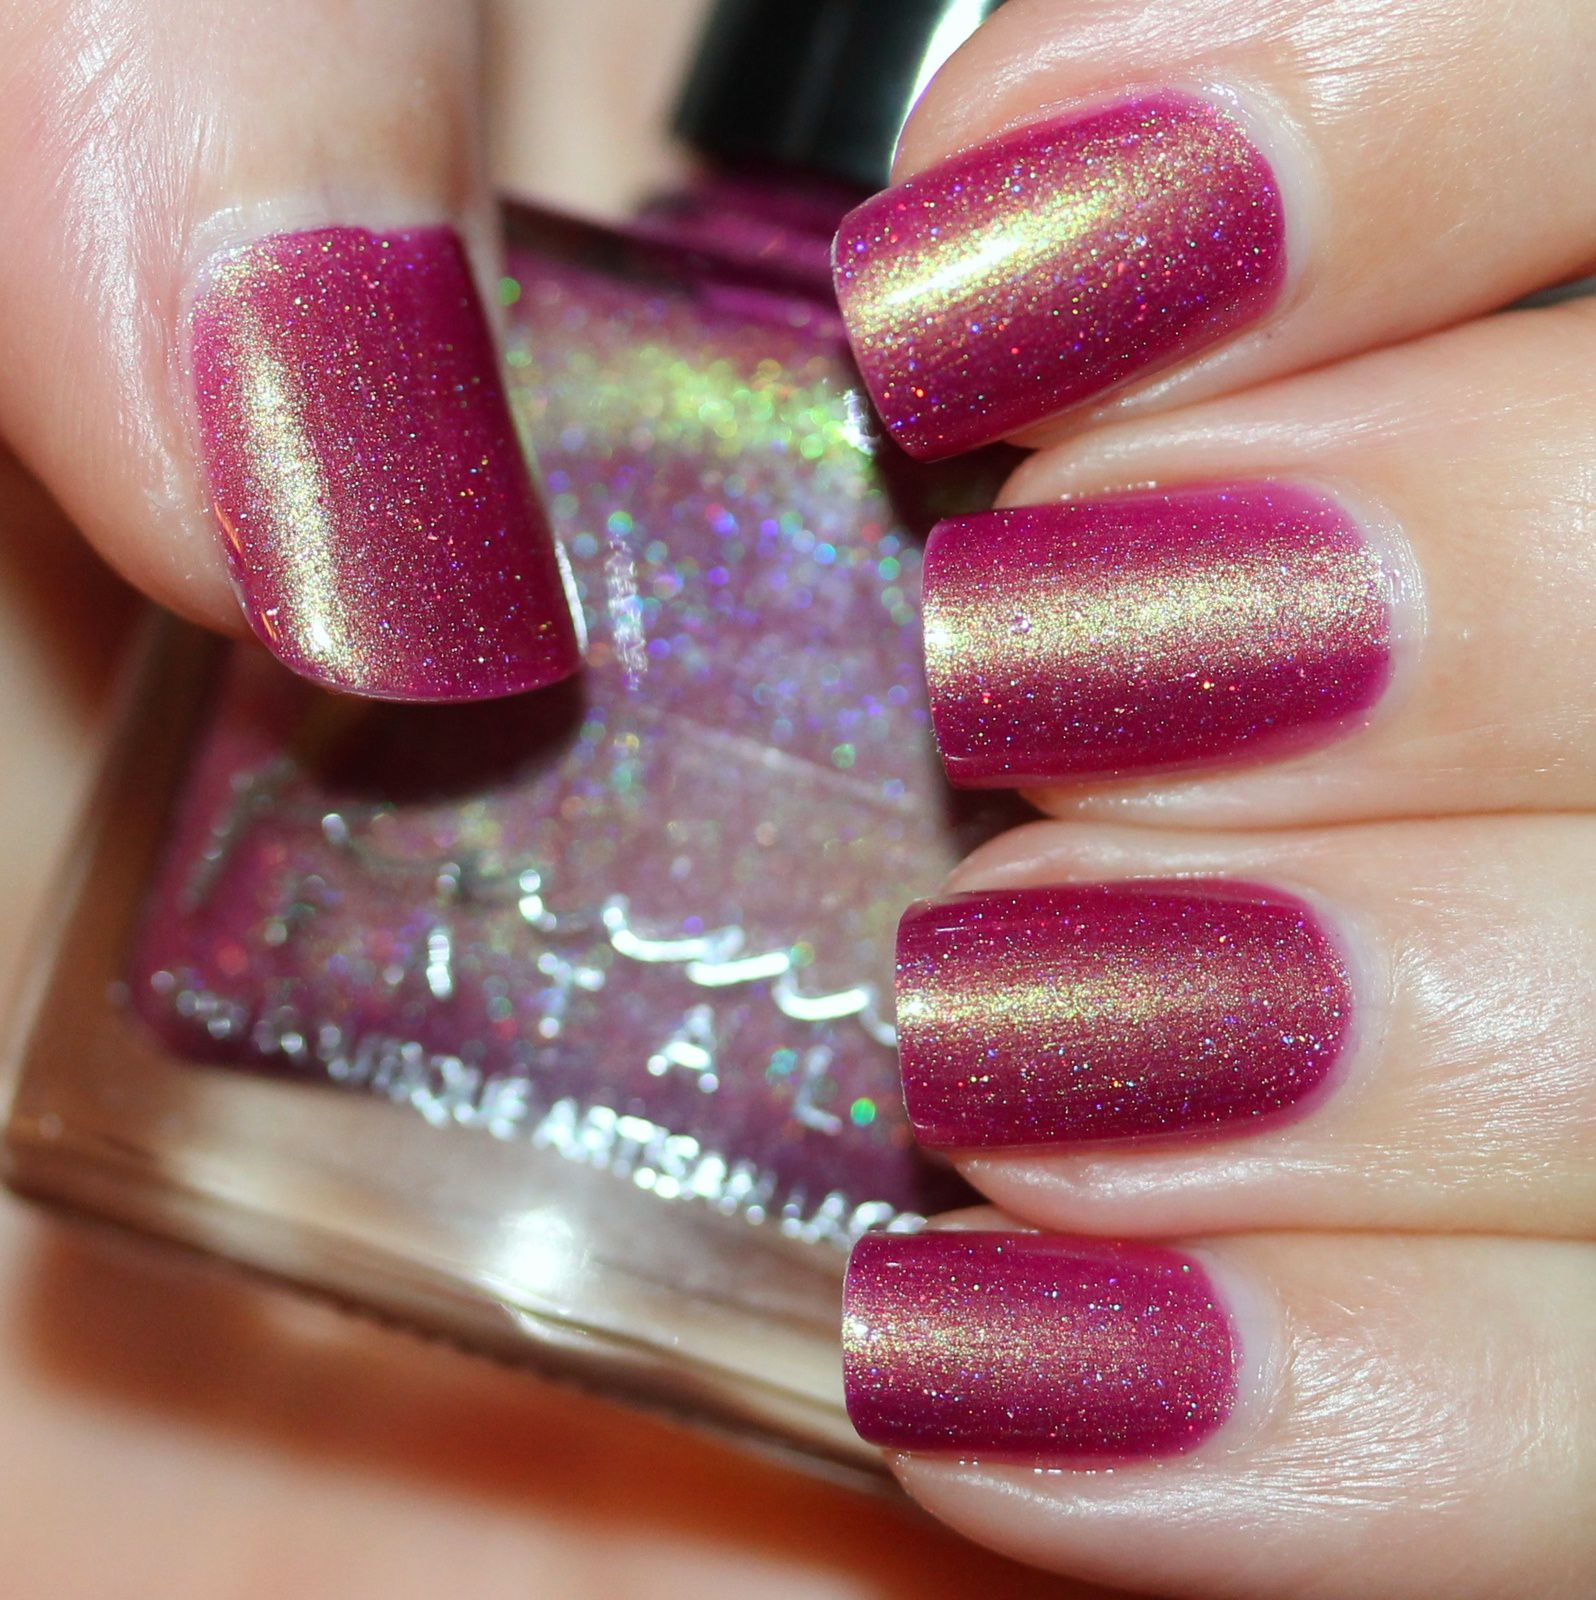 Duri Rejuvacote / Femme Fatale Cosmetics Cassiopeia / Lilypad Lacquer Crystal Clear Top Coat